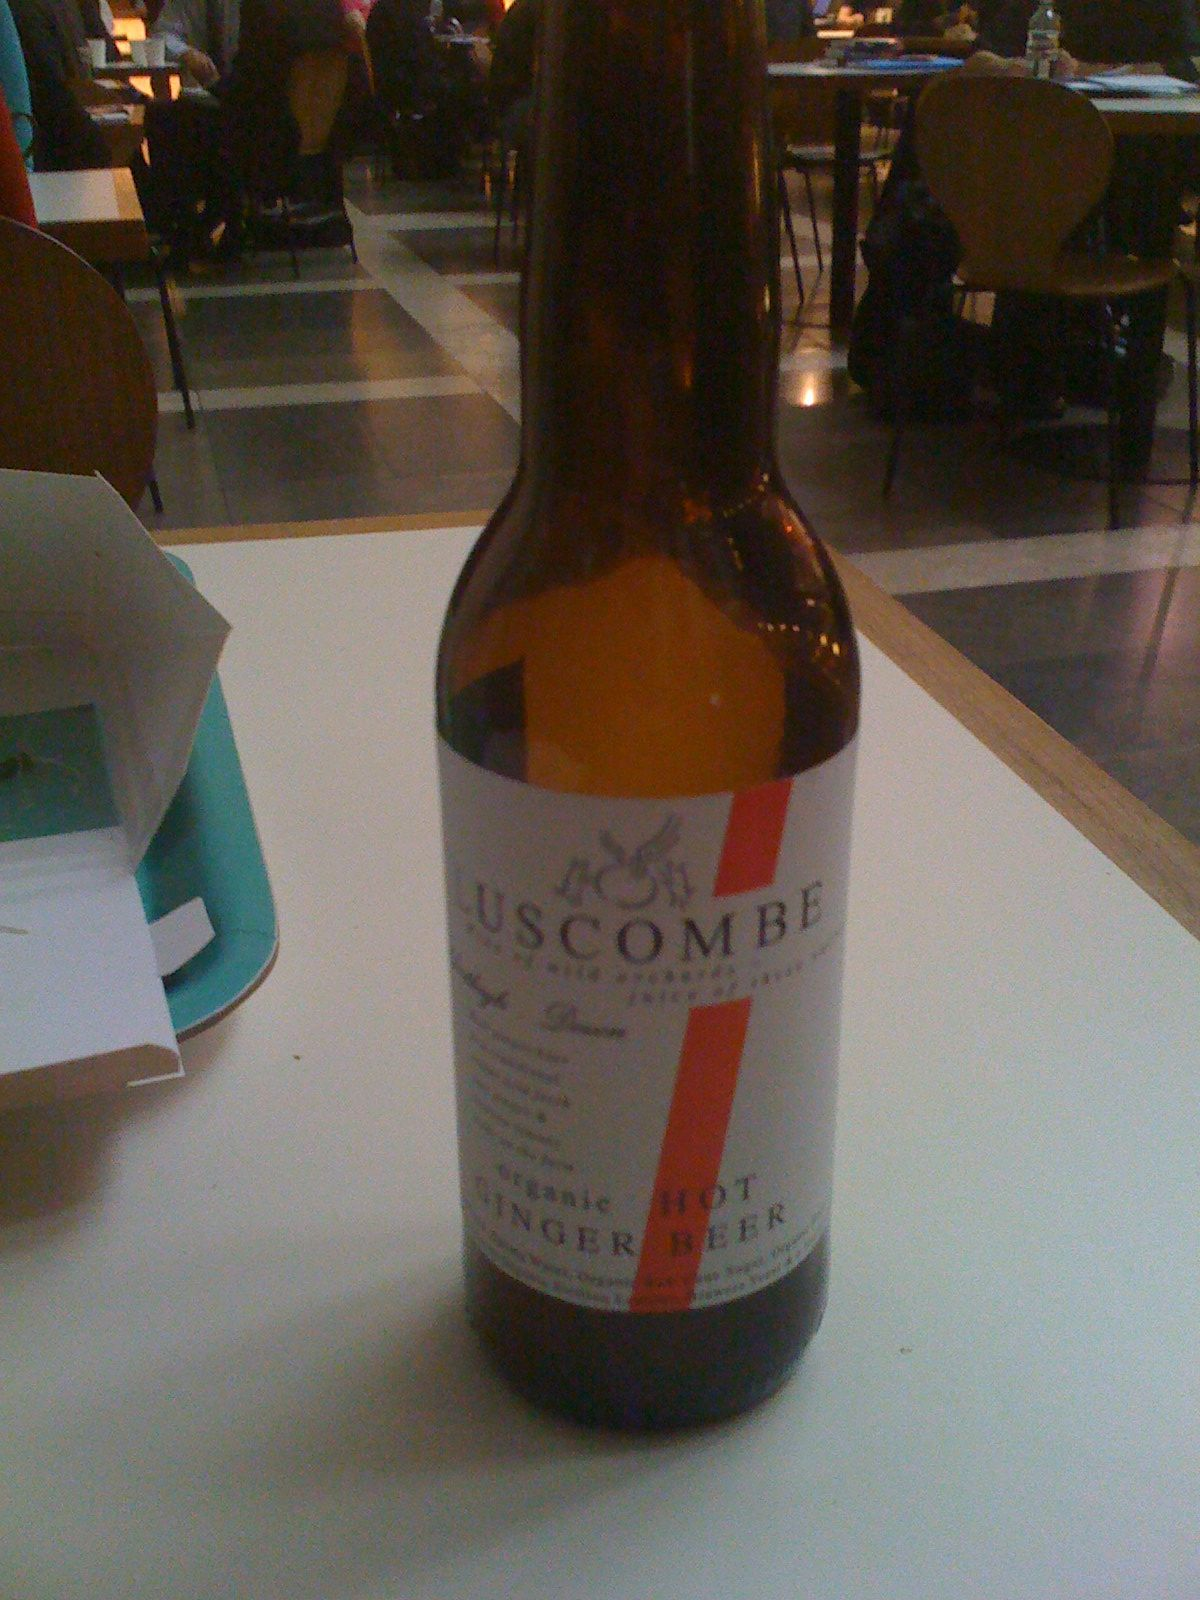 Luscombe's Ginger Beer